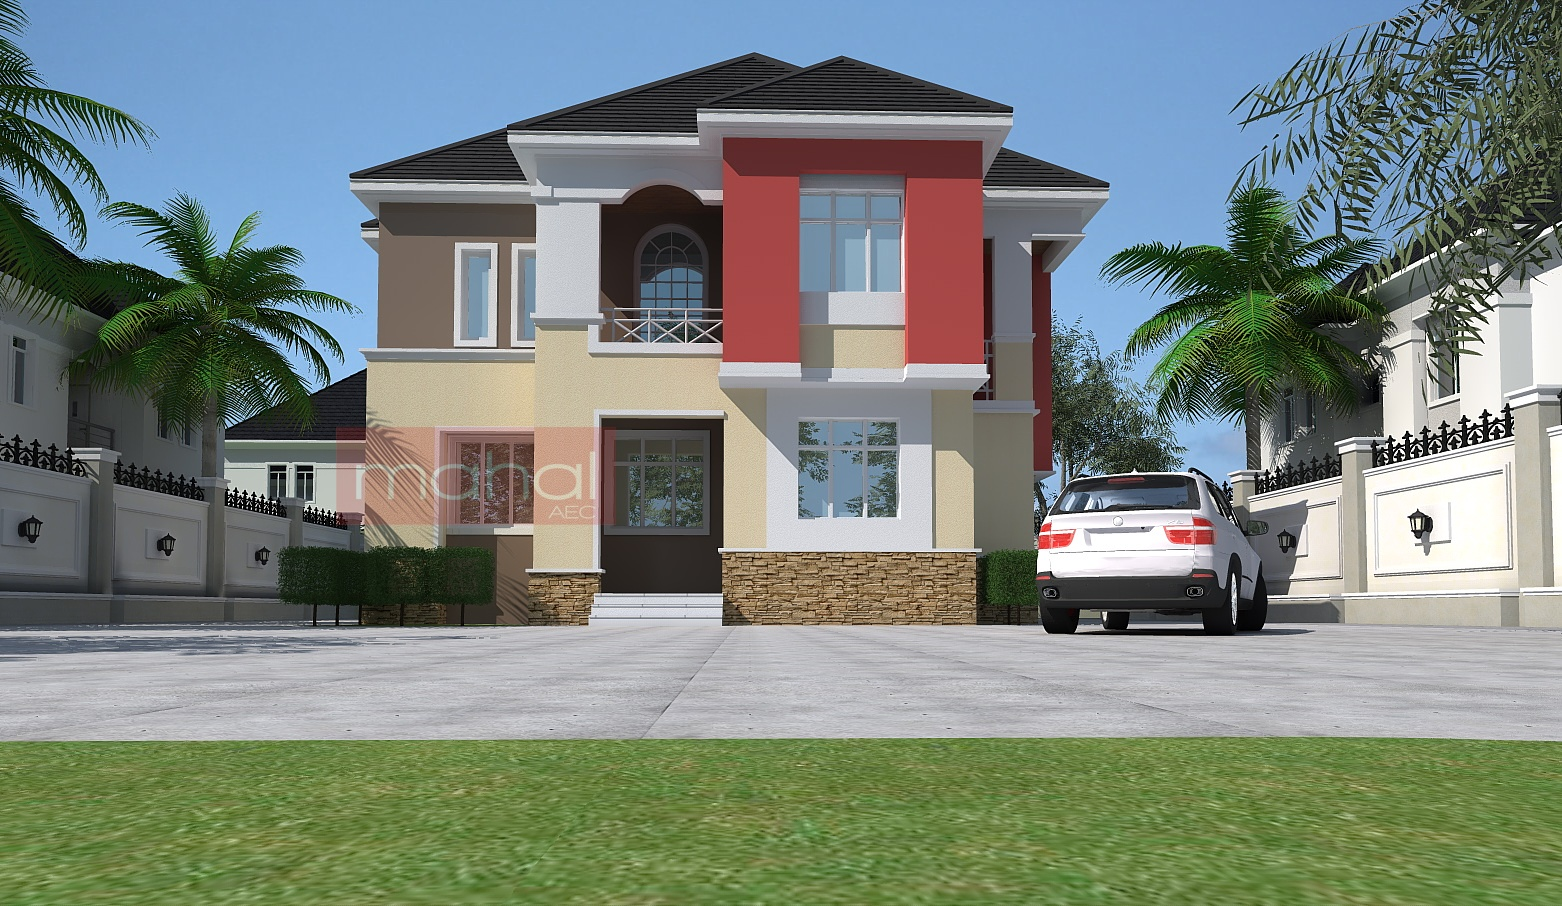 Contemporary nigerian residential architecture nwoko for 4 bedroom maisonette house plans kenya